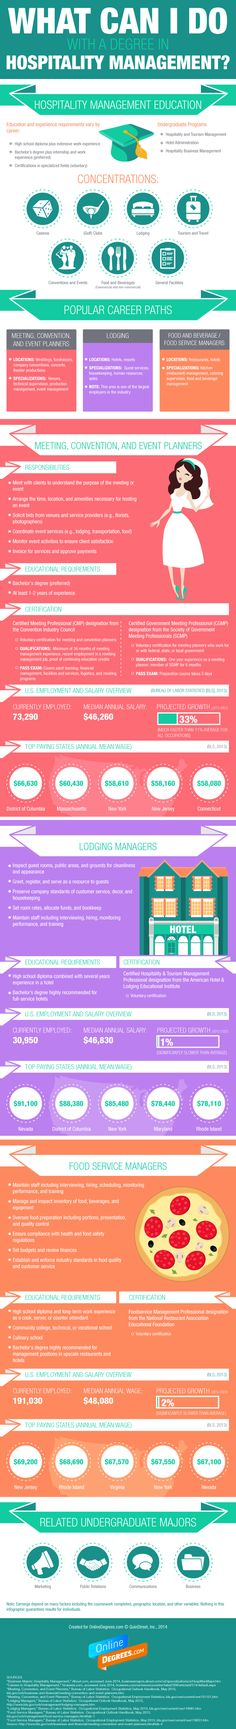 What you can I do with the career in hospitality management? Take a look, to know more: